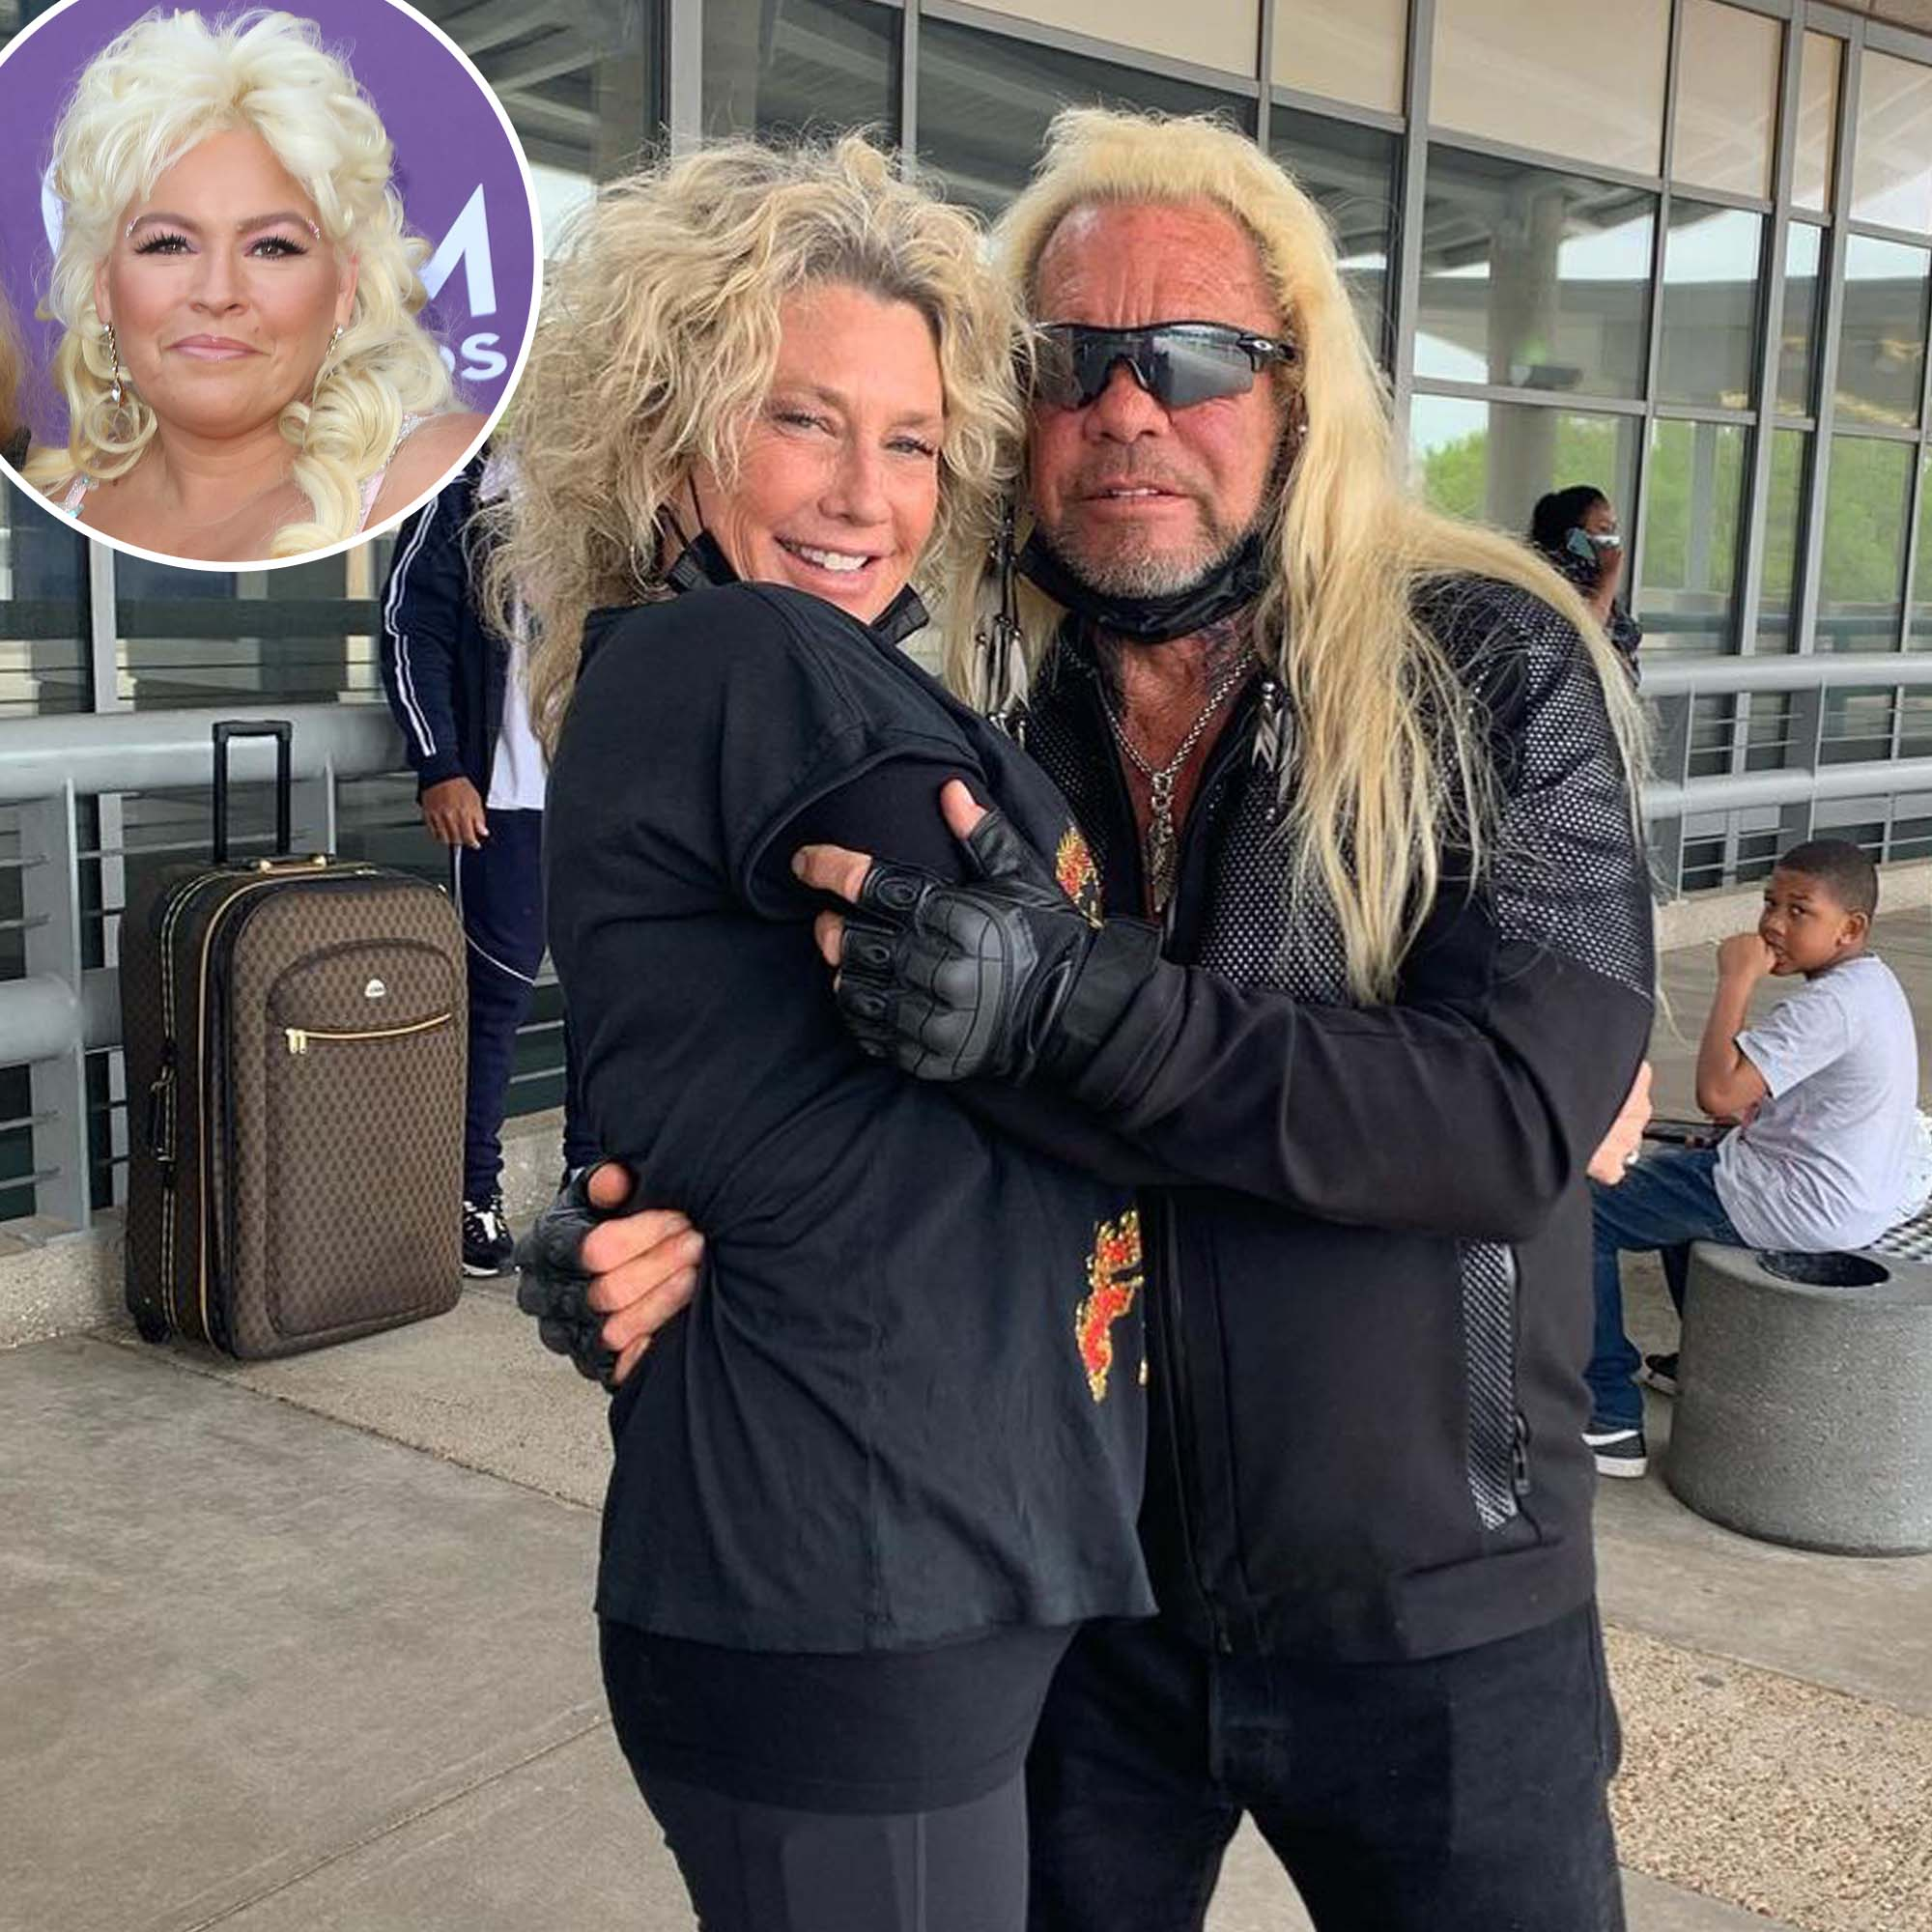 Duane Chapman Reveals Francie Wedding Date 2 Years After Late Wife Beths Death